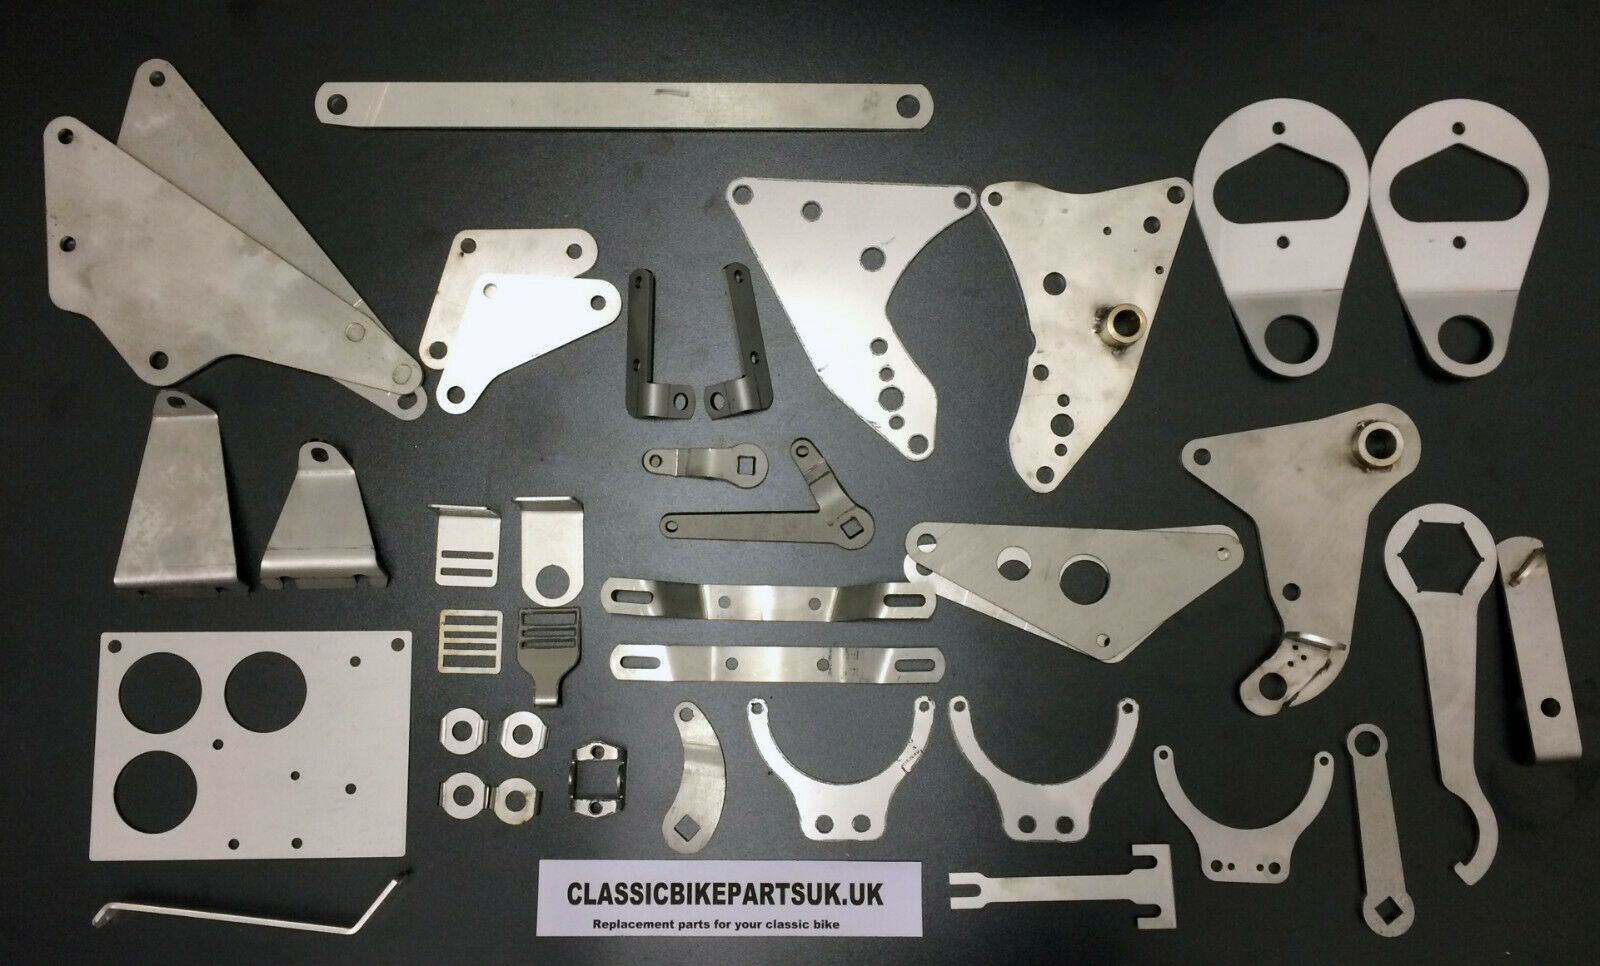 Classic and Vintage Motorcycle Parts and Tools by Classic Bike Parts UK